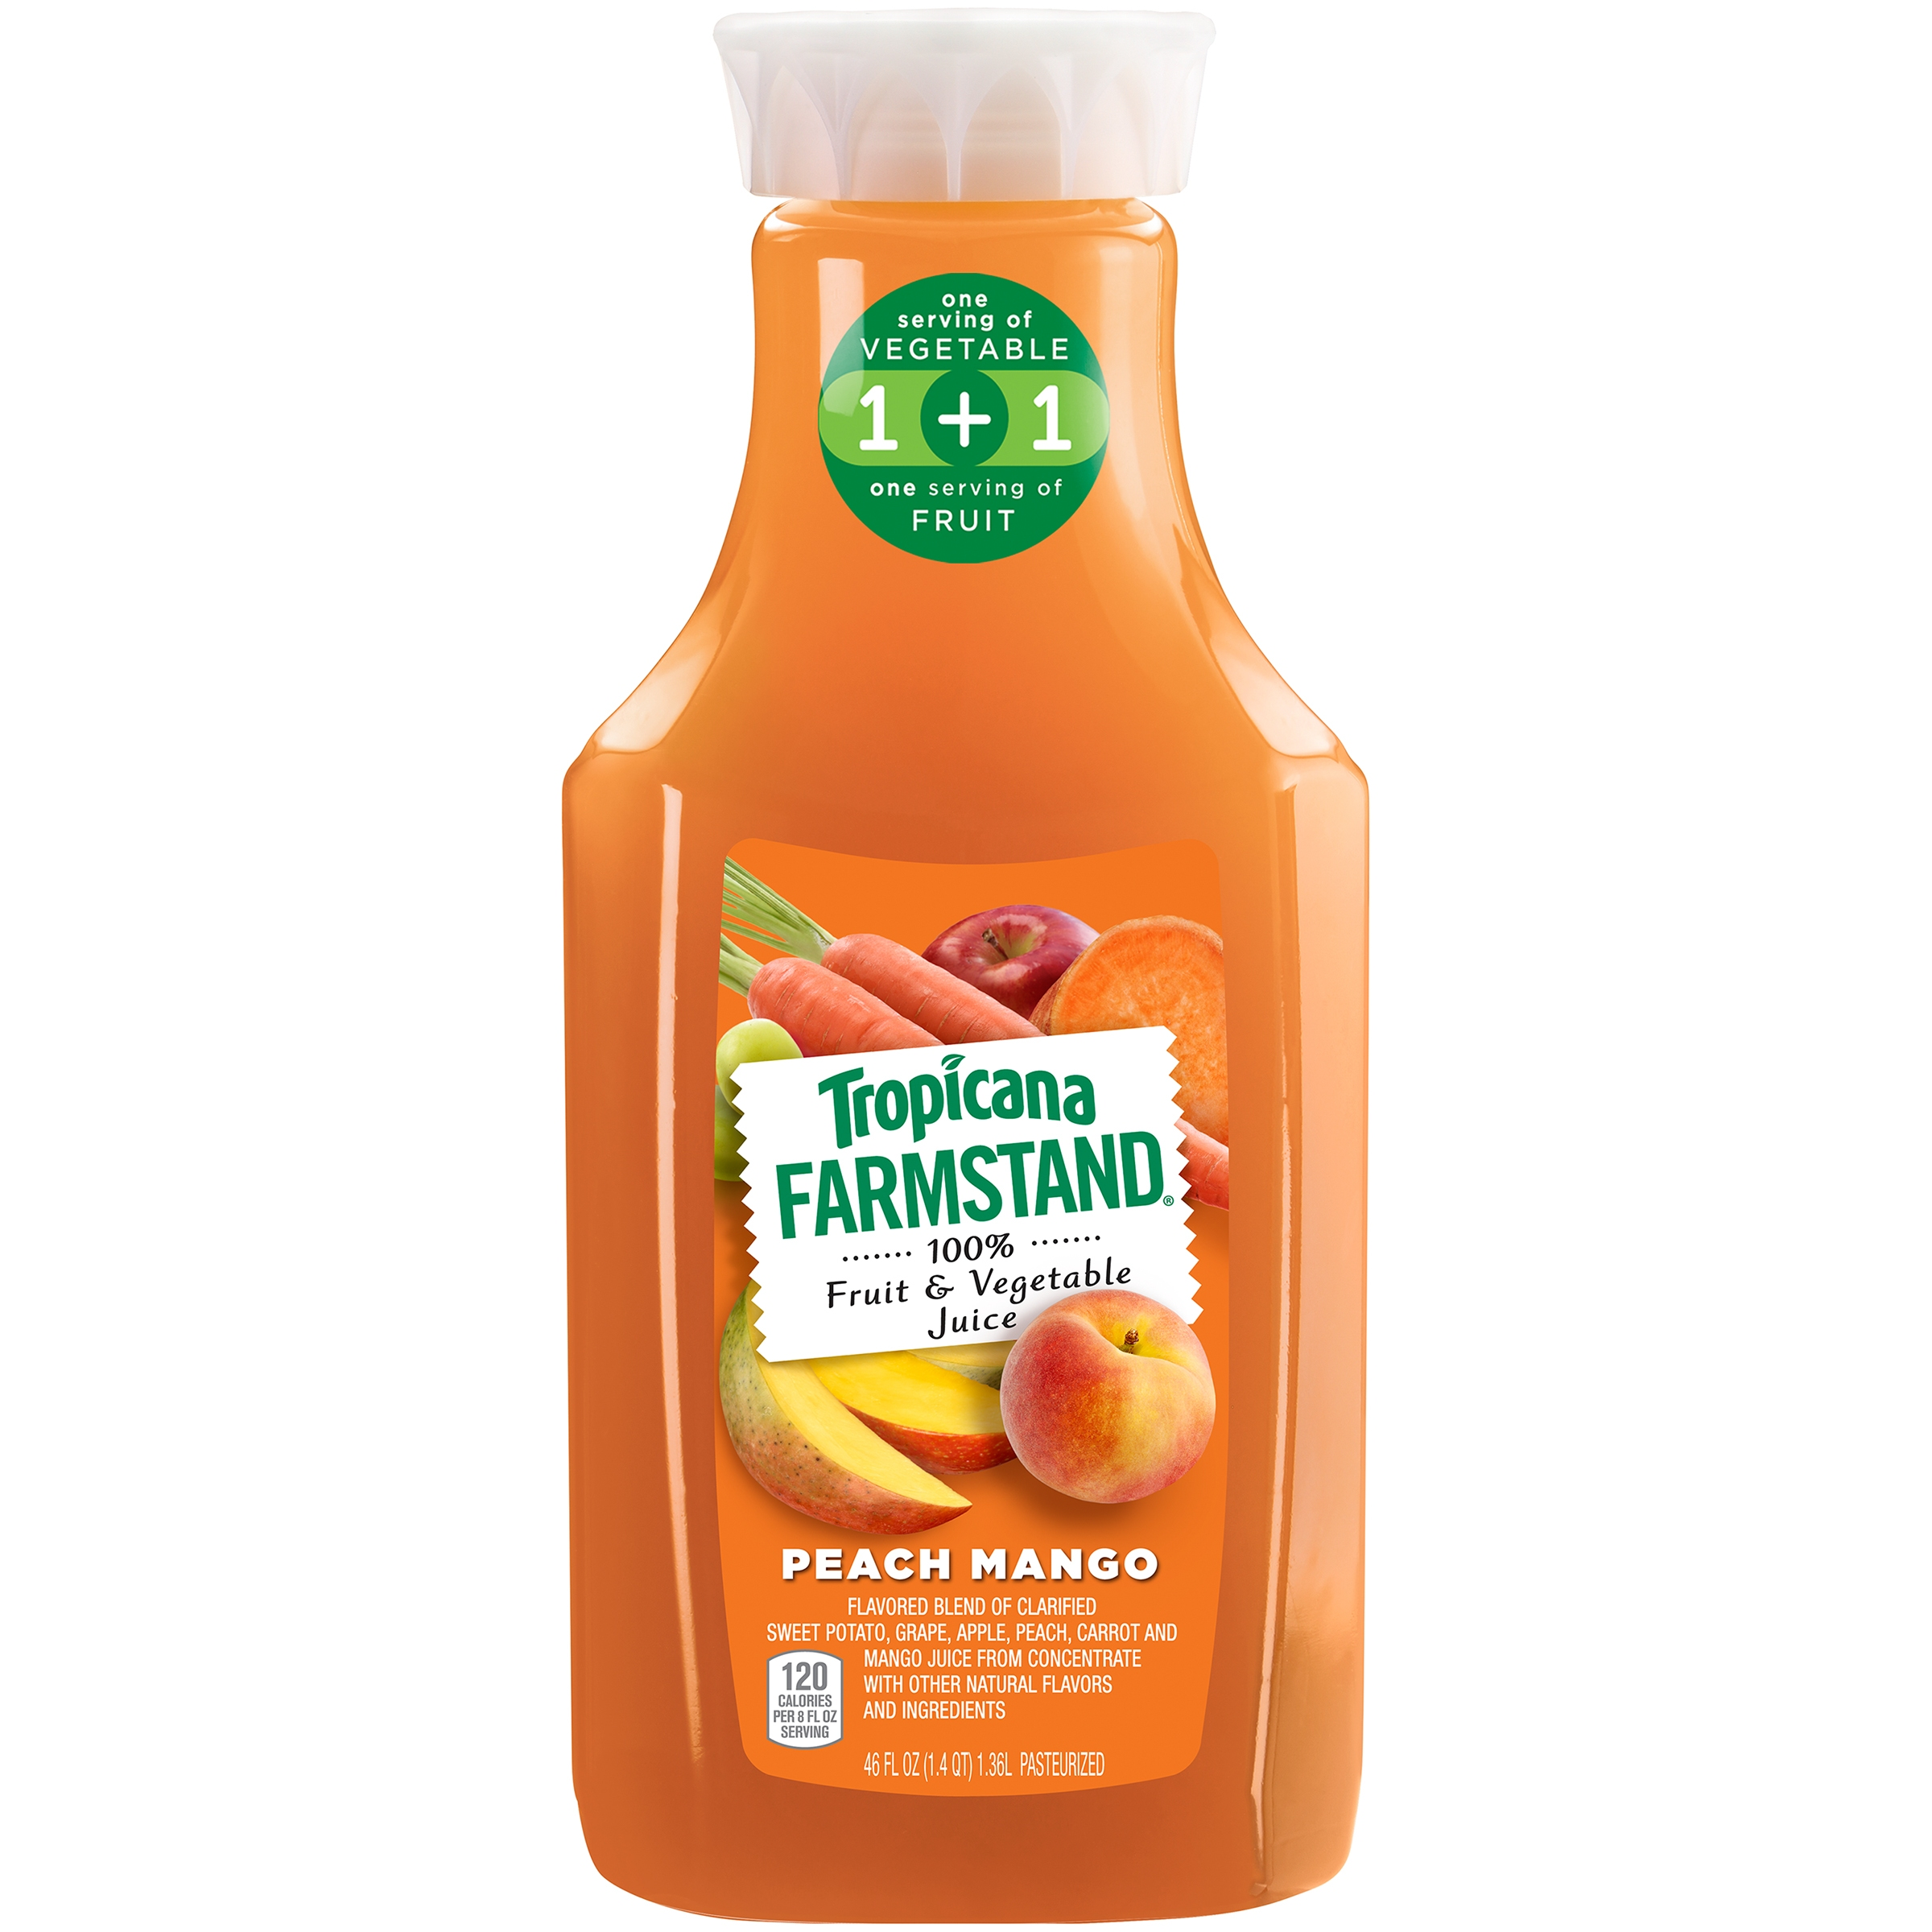 Tropicana Farmstand 100% Fruit & Vegetable Juice Peach Mango ...